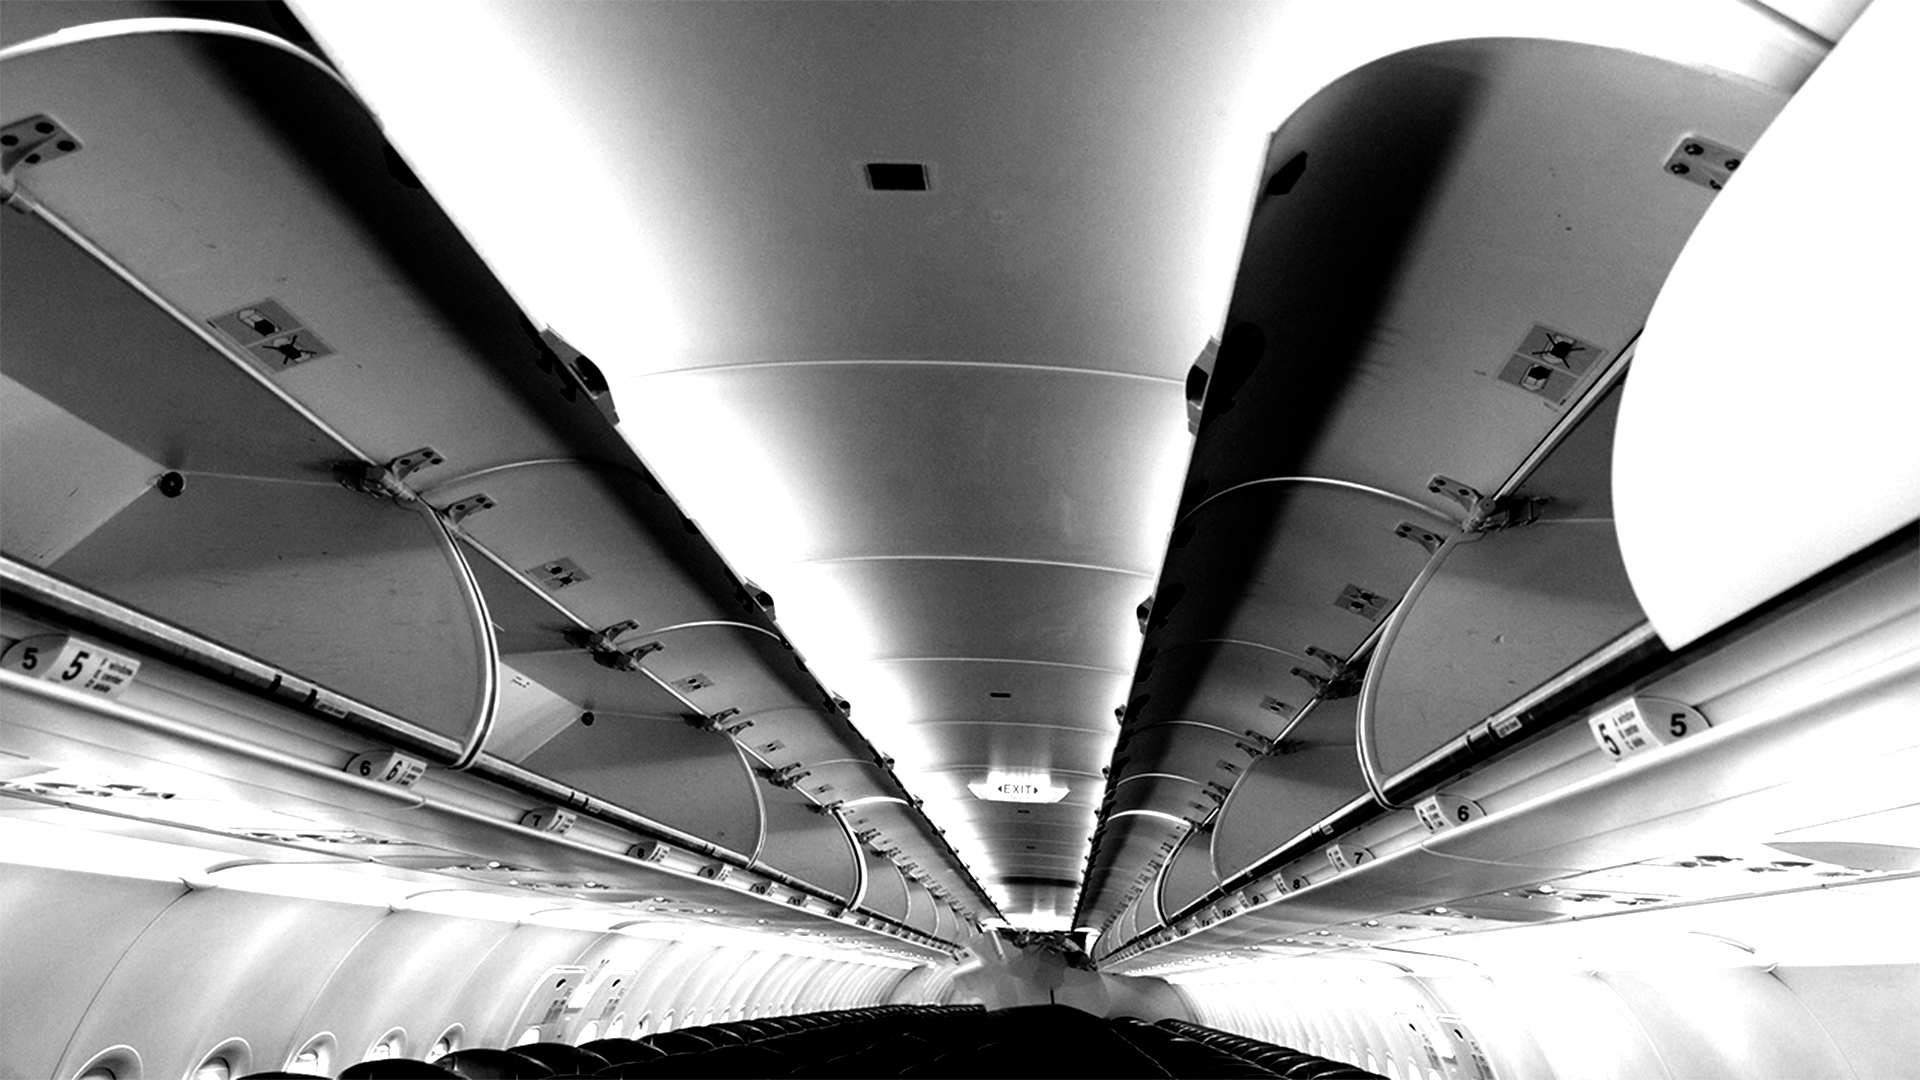 Interior of a commercial aircraft